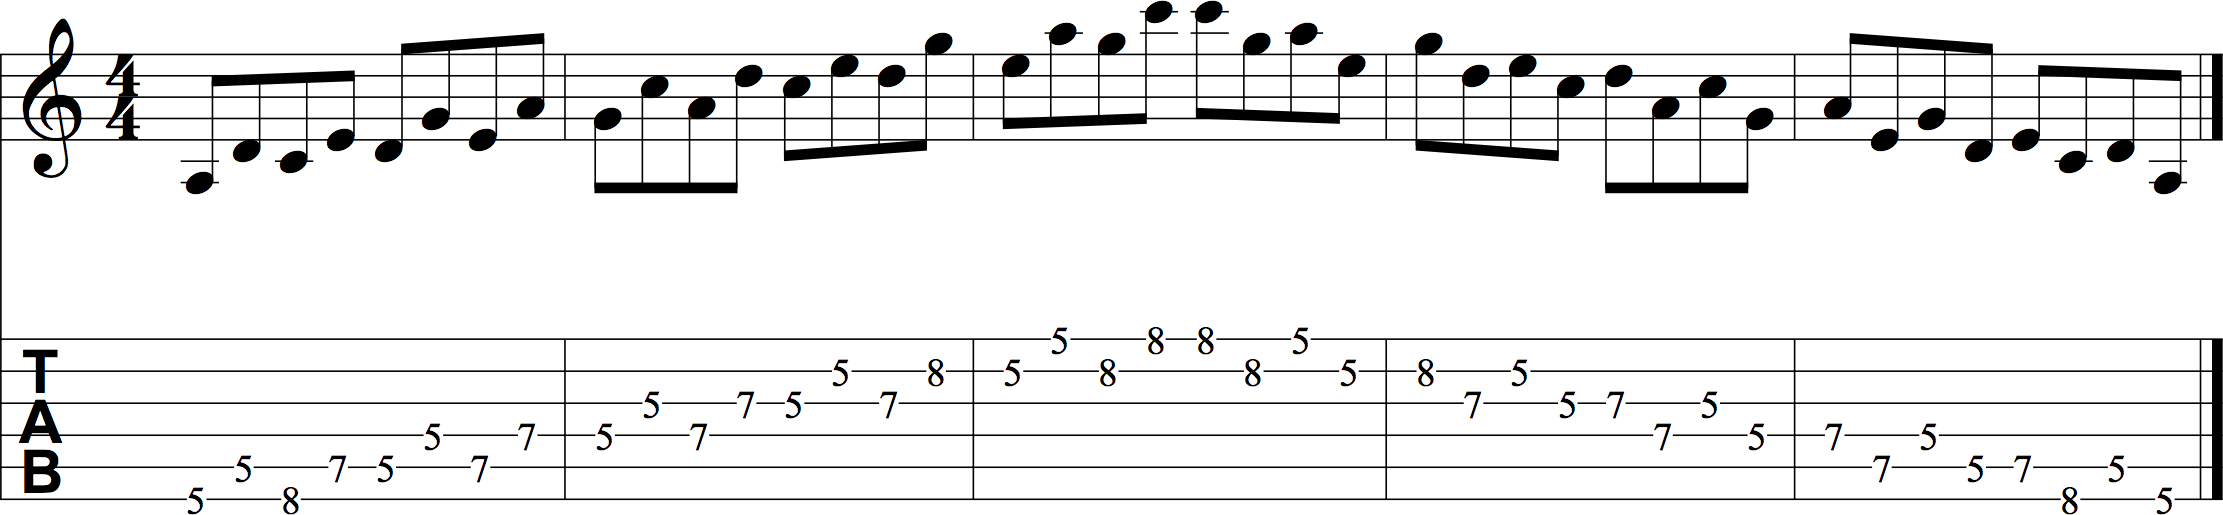 An A minor pentatonic scale in fourths.